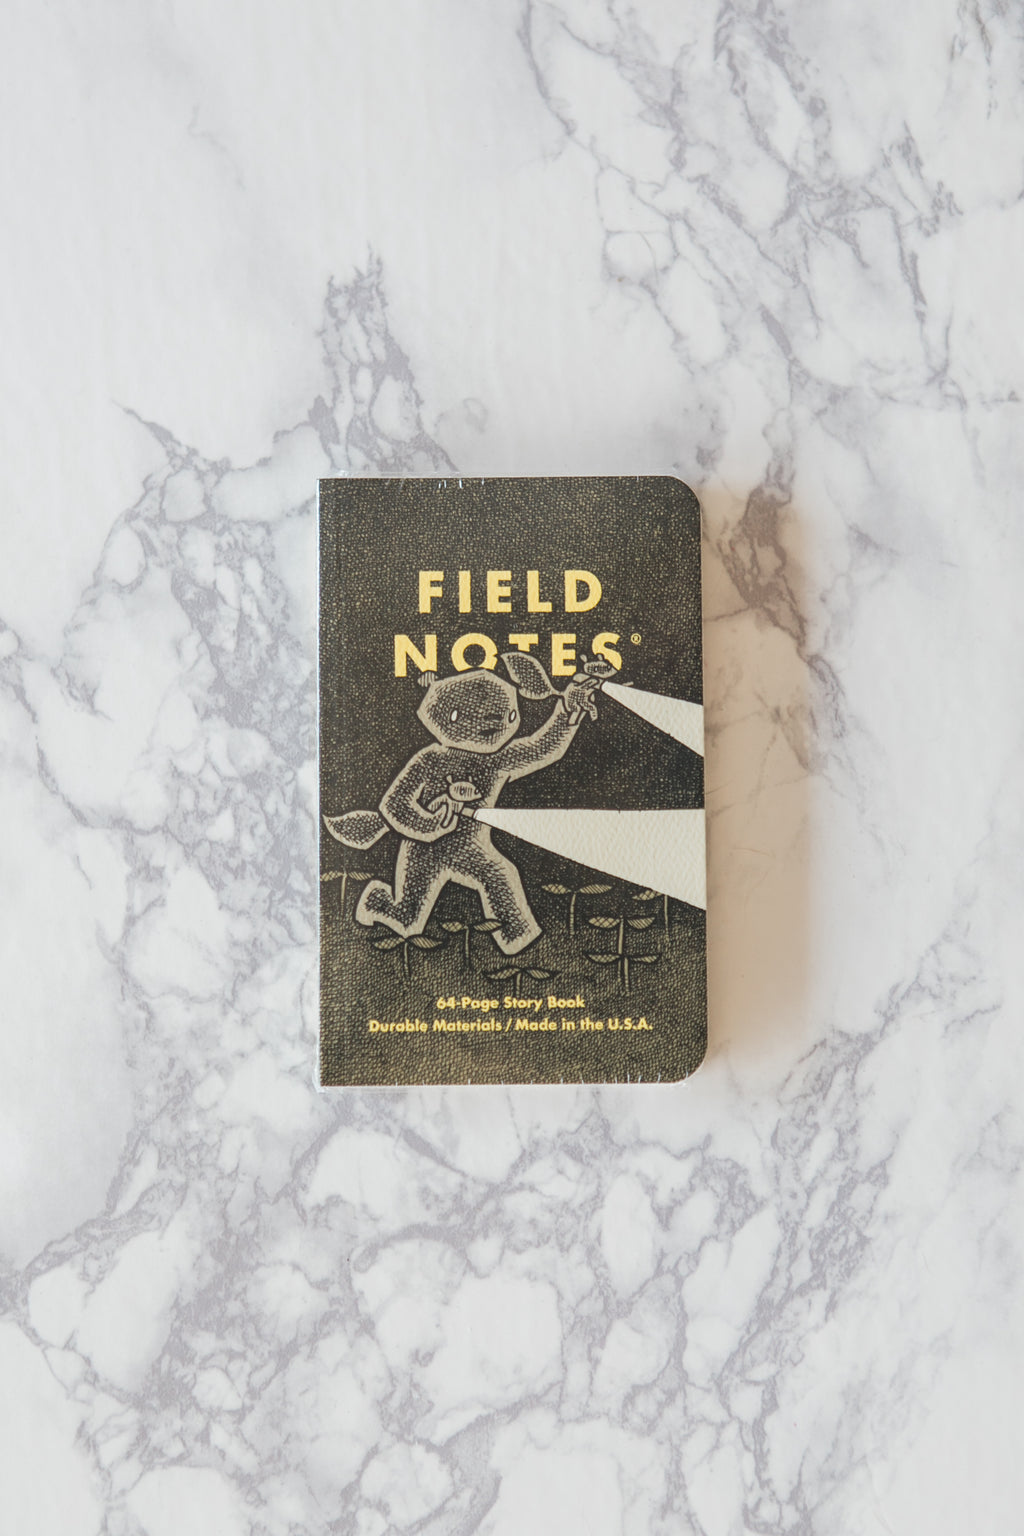 Story Books - Field Notes